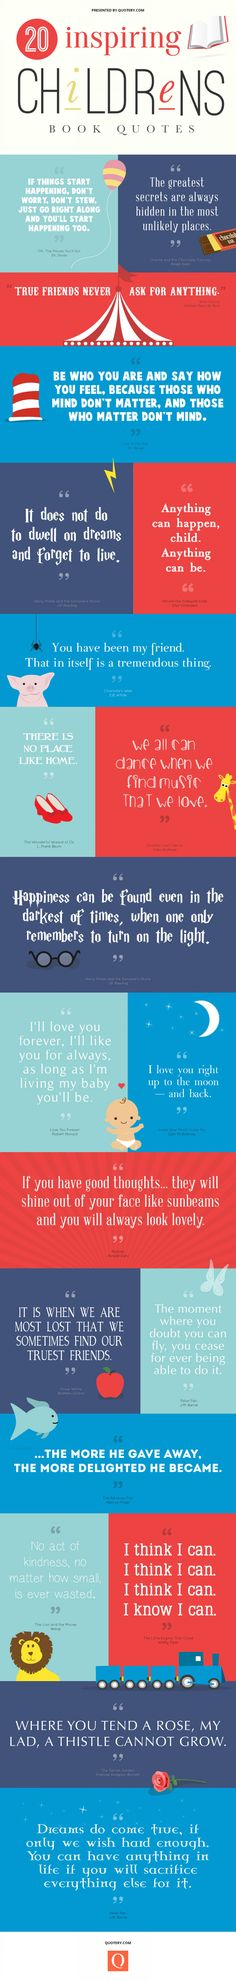 20 inspiring Childrens book quotes